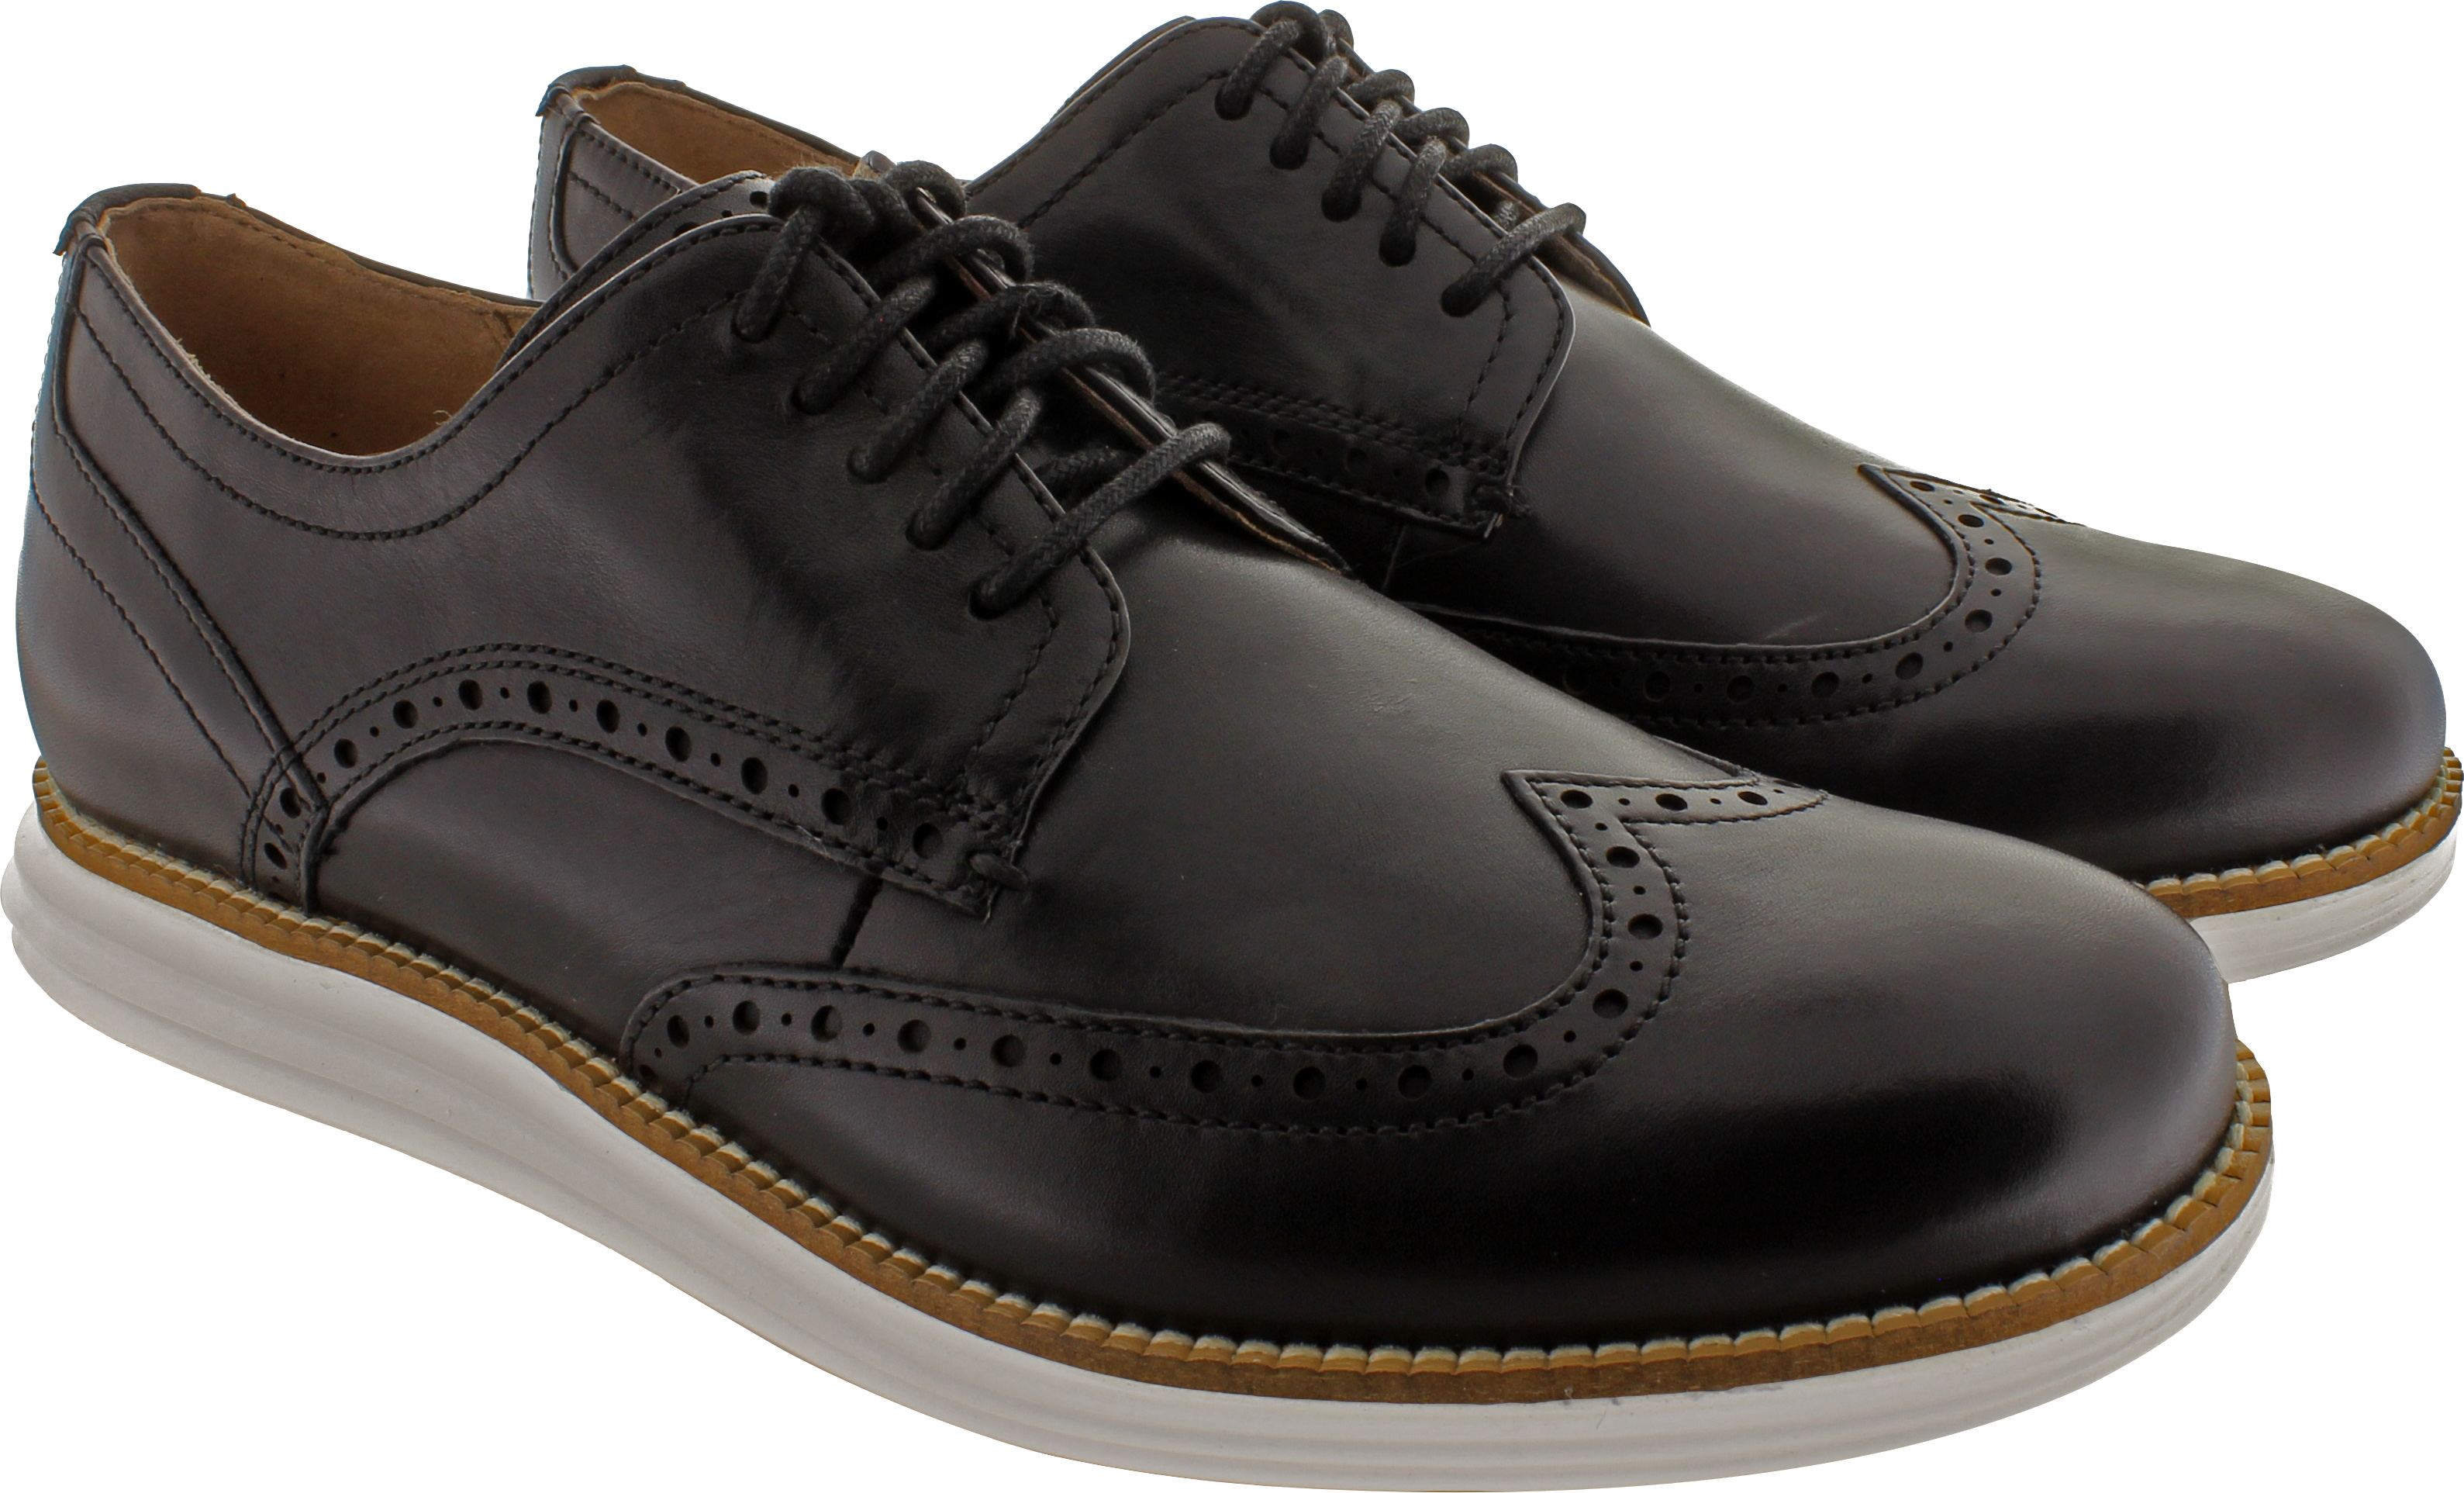 a47b4658c5b02 ... Cole Haan Men s C26469 - W. Original Grand Shortwing ·  https   www.theshoemart.com product images images COL